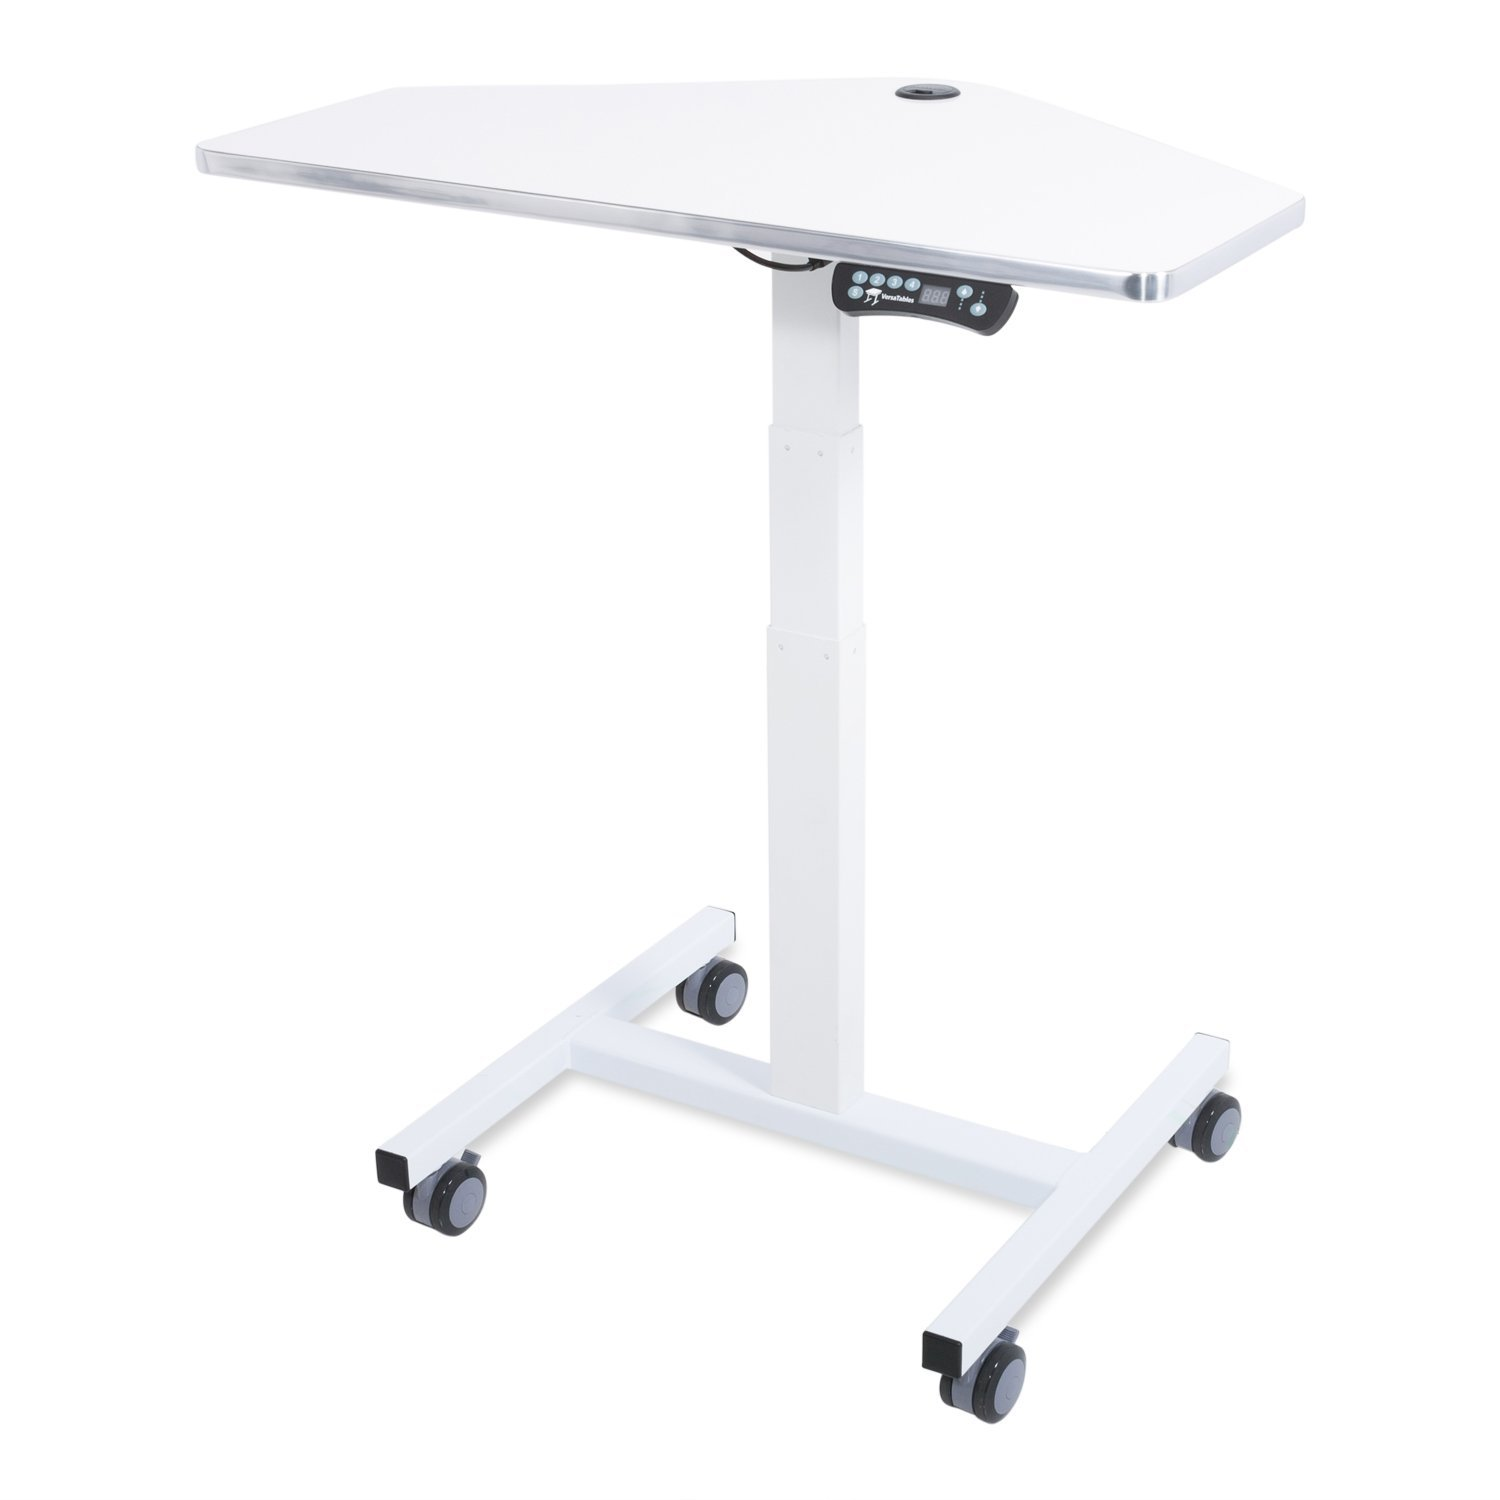 Sit-to-Stand Mini Desk Laptop Computer Cart, Ergonomic Electric Height Adjustable Mobile Workstation (White)